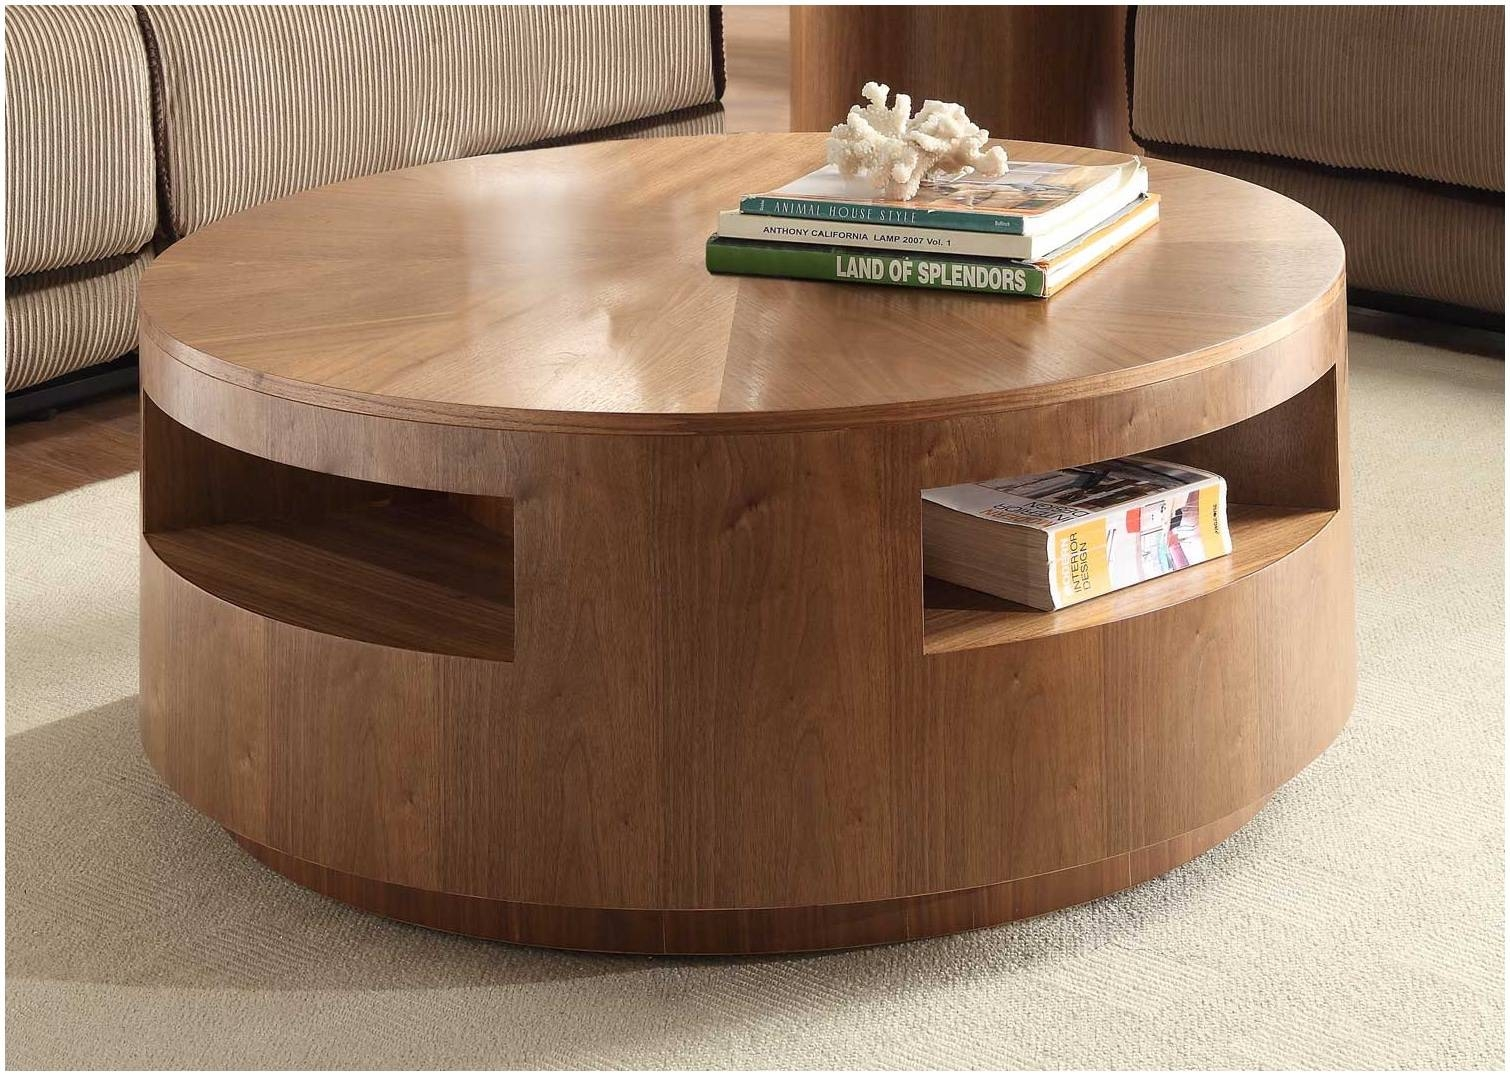 Oak And Glass Coffee Table Uk – Cocinacentral.co inside Round Oak Coffee Tables (Image 18 of 30)